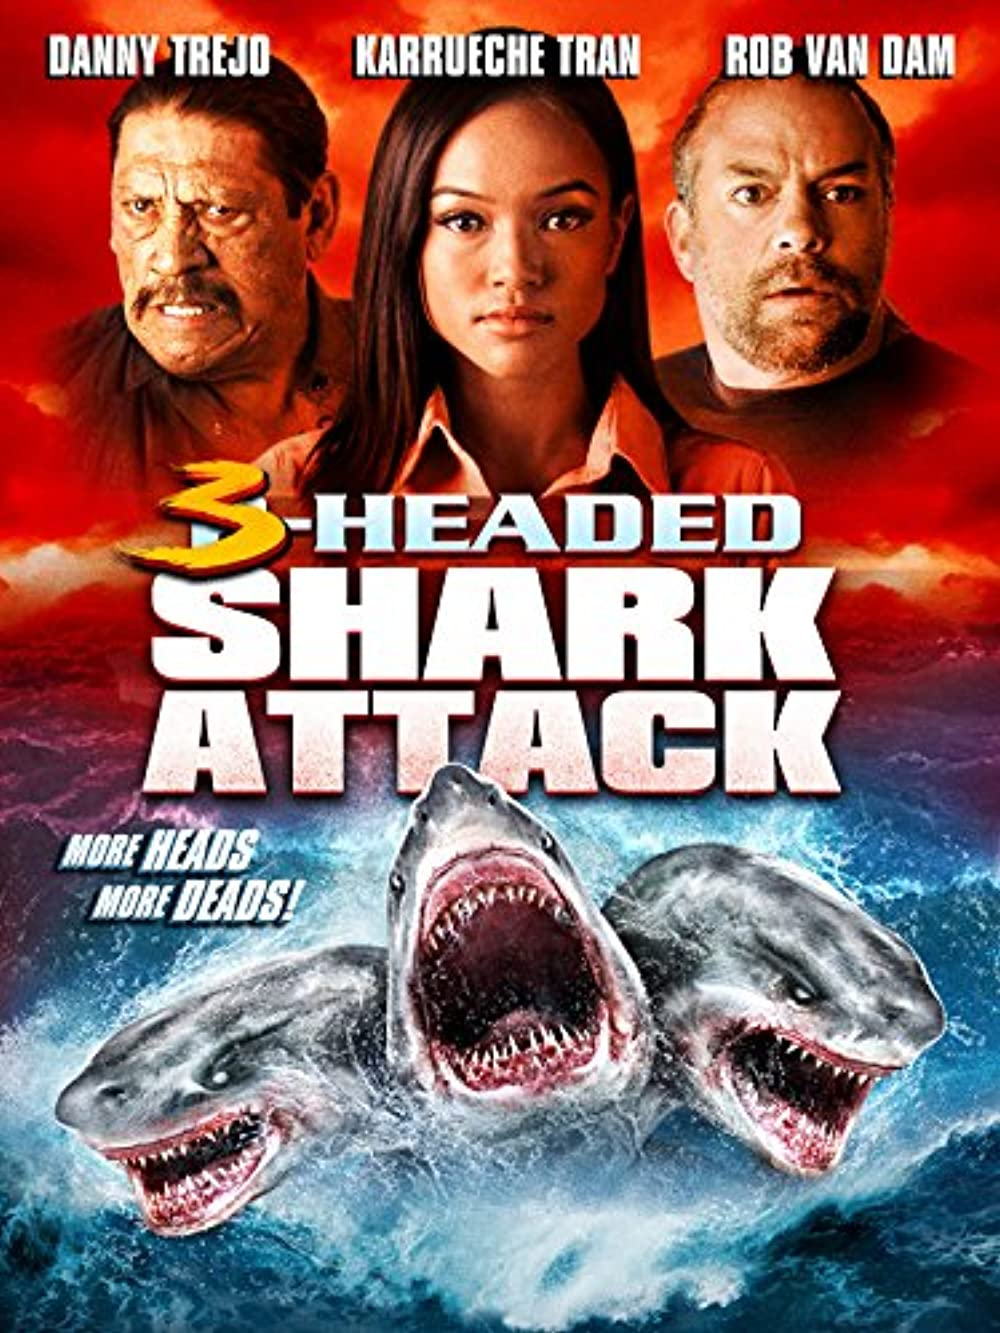 3 Headed Shark Attack 2015 Hindi Dual Audio 1080p BluRay ESubs 1.4GB x264 AAC